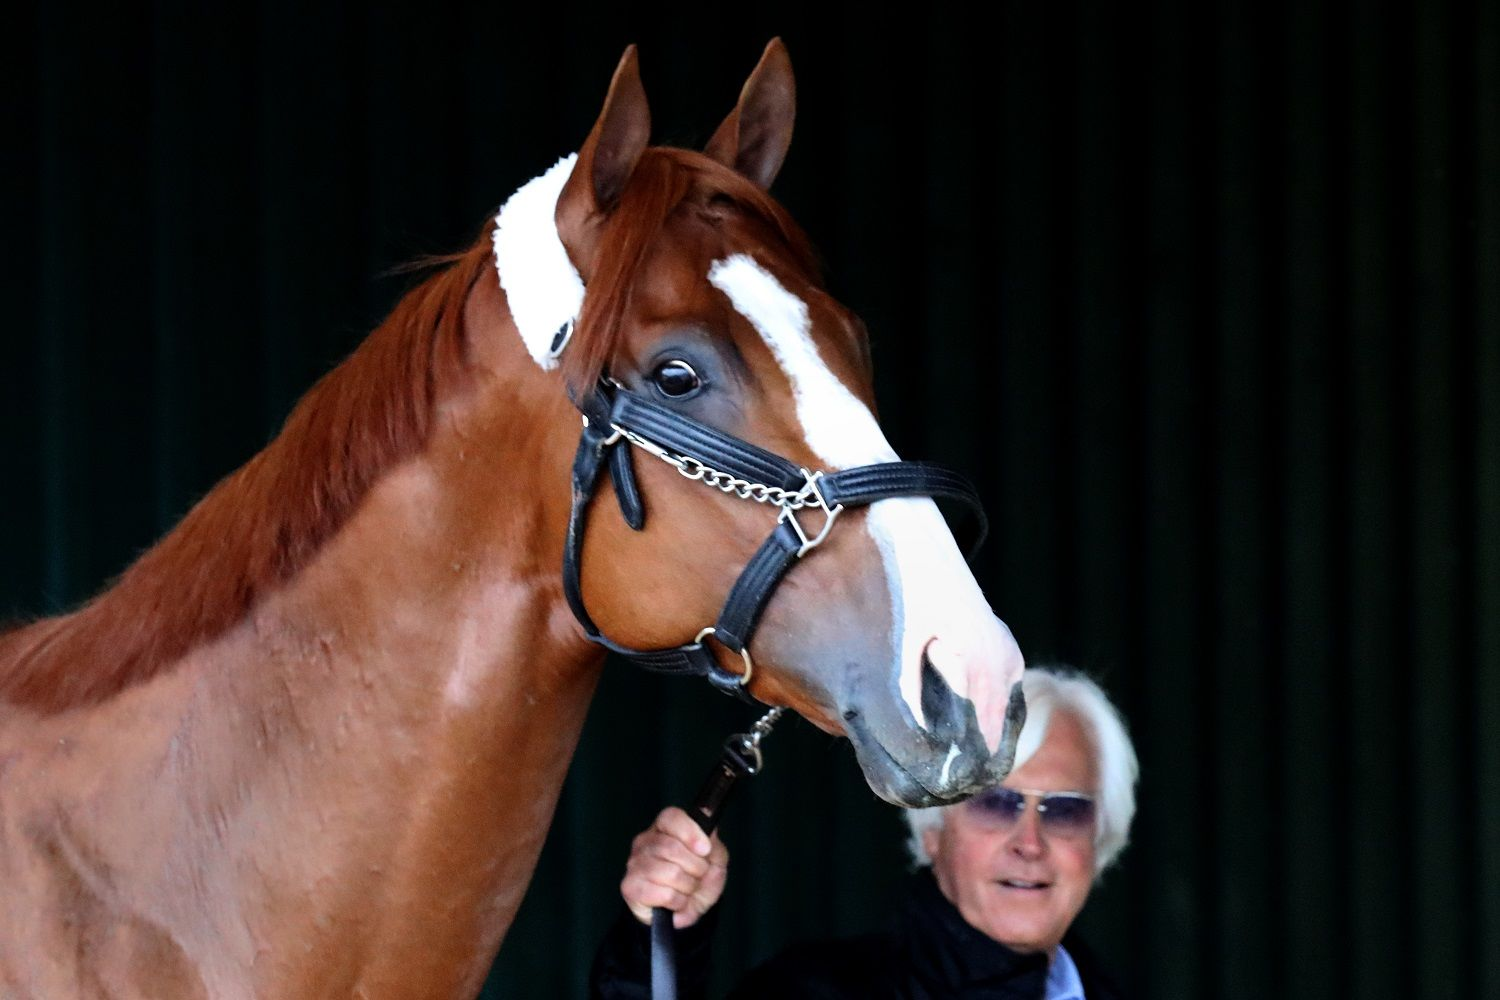 BALTIMORE, MD - MAY 16: Trainer Bob Baffert walks Kentucky Derby winner Justify in the barn after the horse arrived at Pimlico Race Course for the upcoming Preakness Stakes on May 16, 2018 in Baltimore, Maryland. (Photo by Rob Carr/Getty Images)